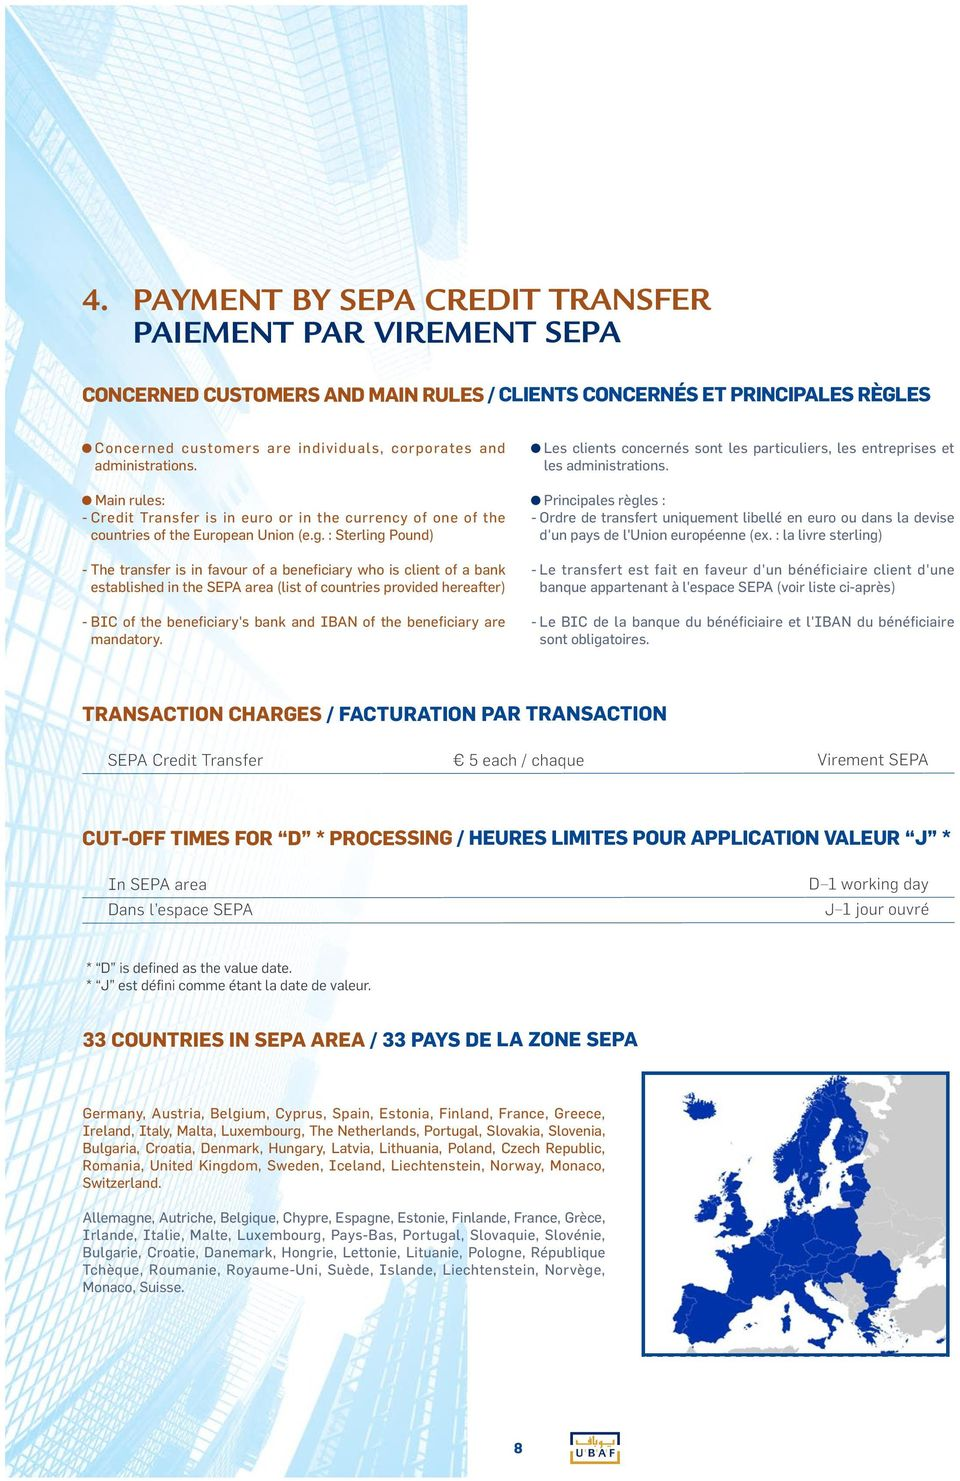 : Sterling Pound) - The transfer is in favour of a beneficiary who is client of a bank established in the SEPA area (list of countries provided hereafter) - BIC of the beneficiary's bank and IBAN of